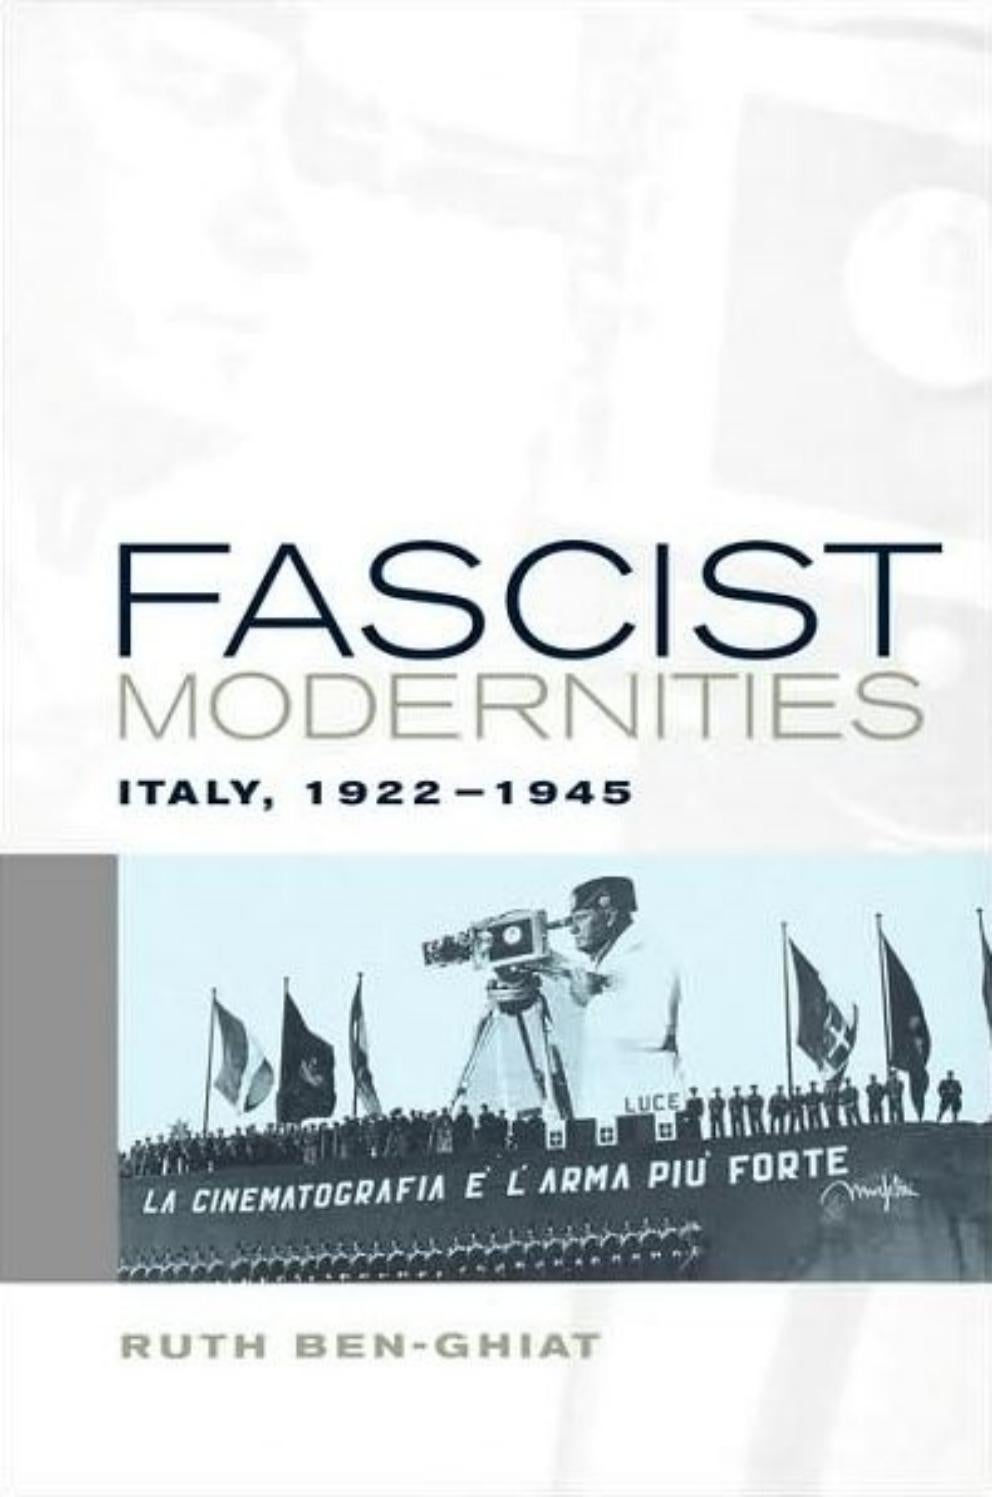 (studies on the history of society and culture 42) ruth ben ghiat fascist  modernities italy, 1922 19 by Clara F. Figueiredo - issuu